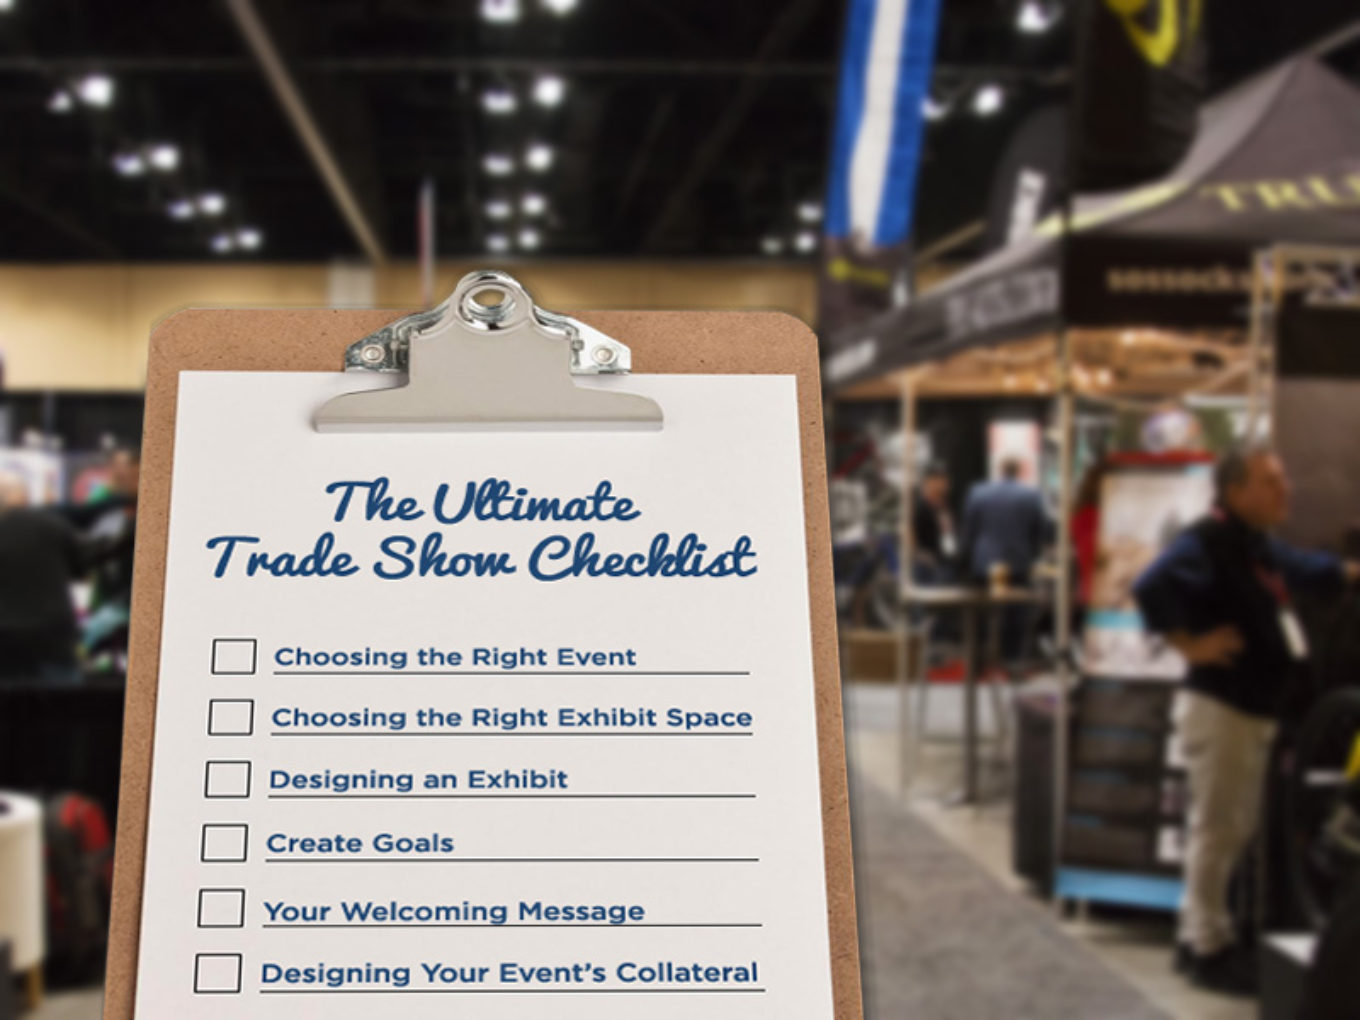 Exhibition Booth Checklist : The ultimate trade show checklist sourceone events